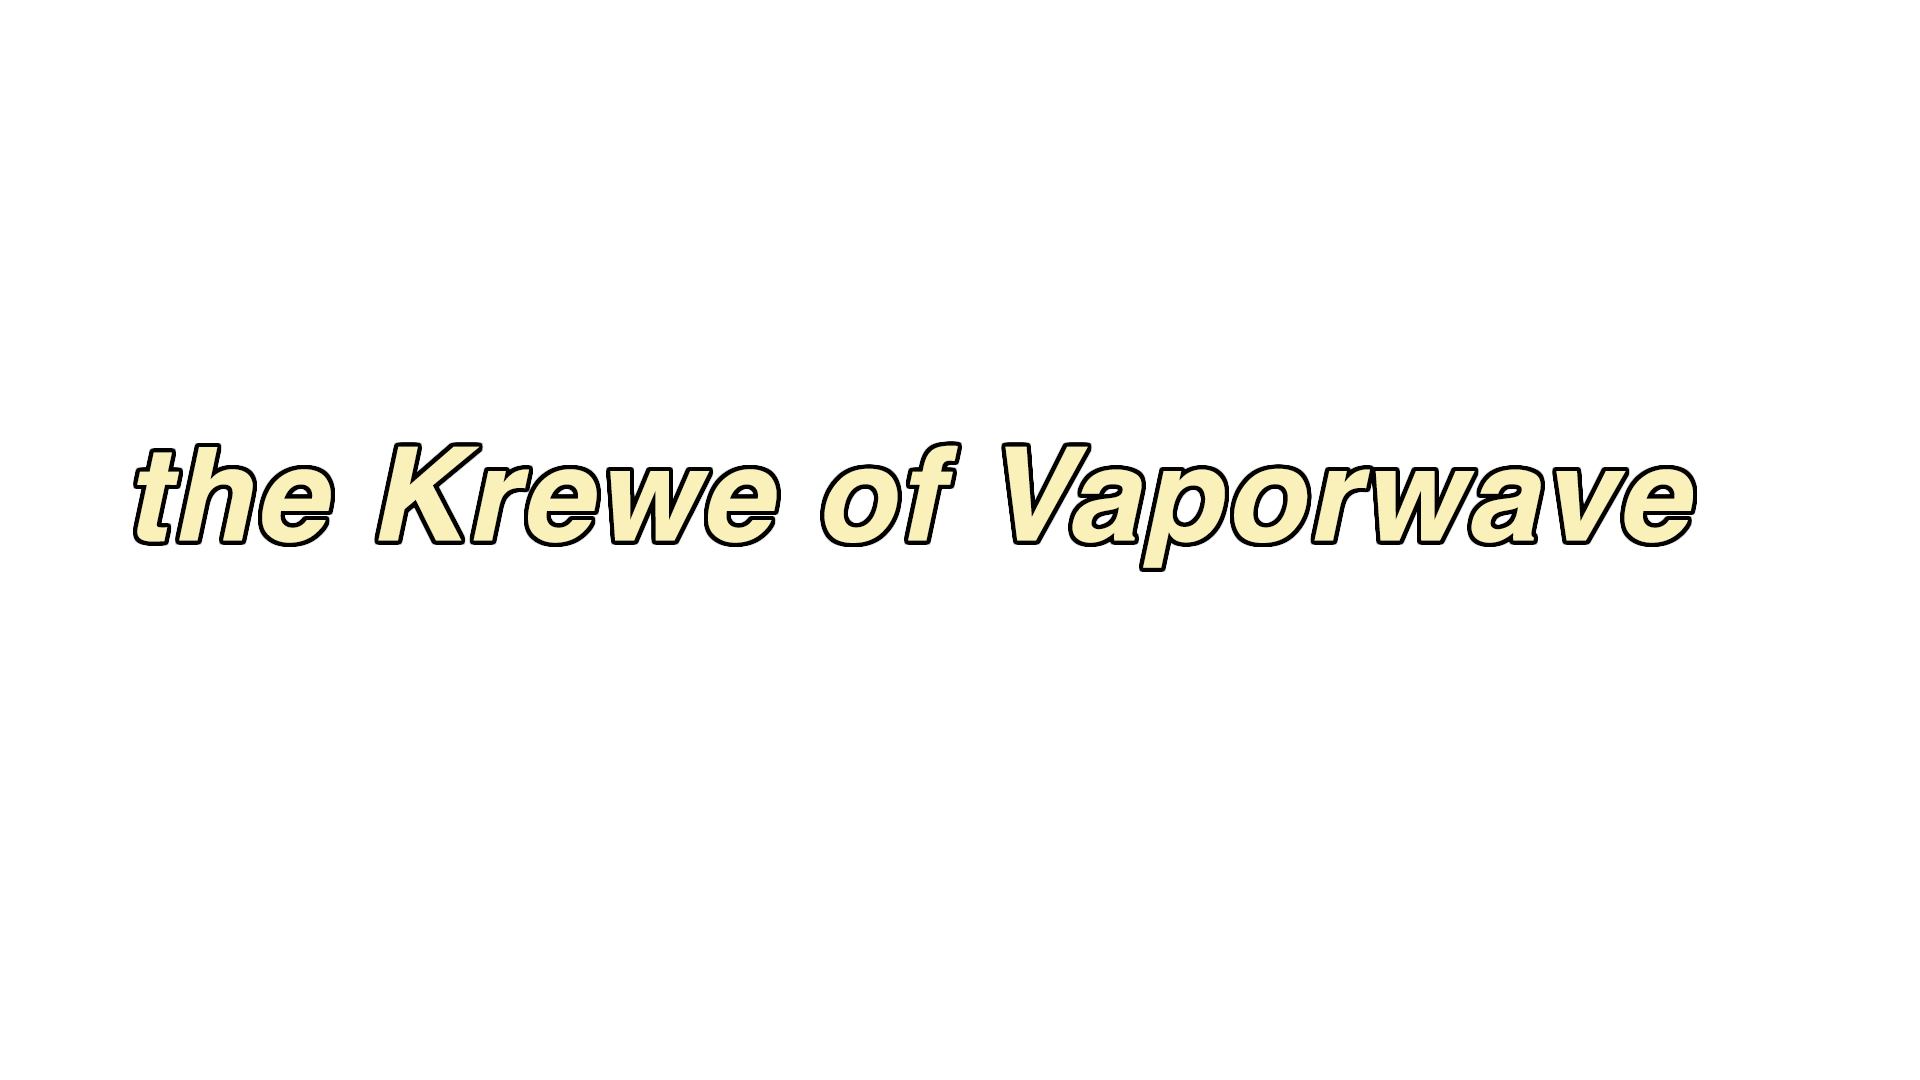 Krewe of Vaporwave